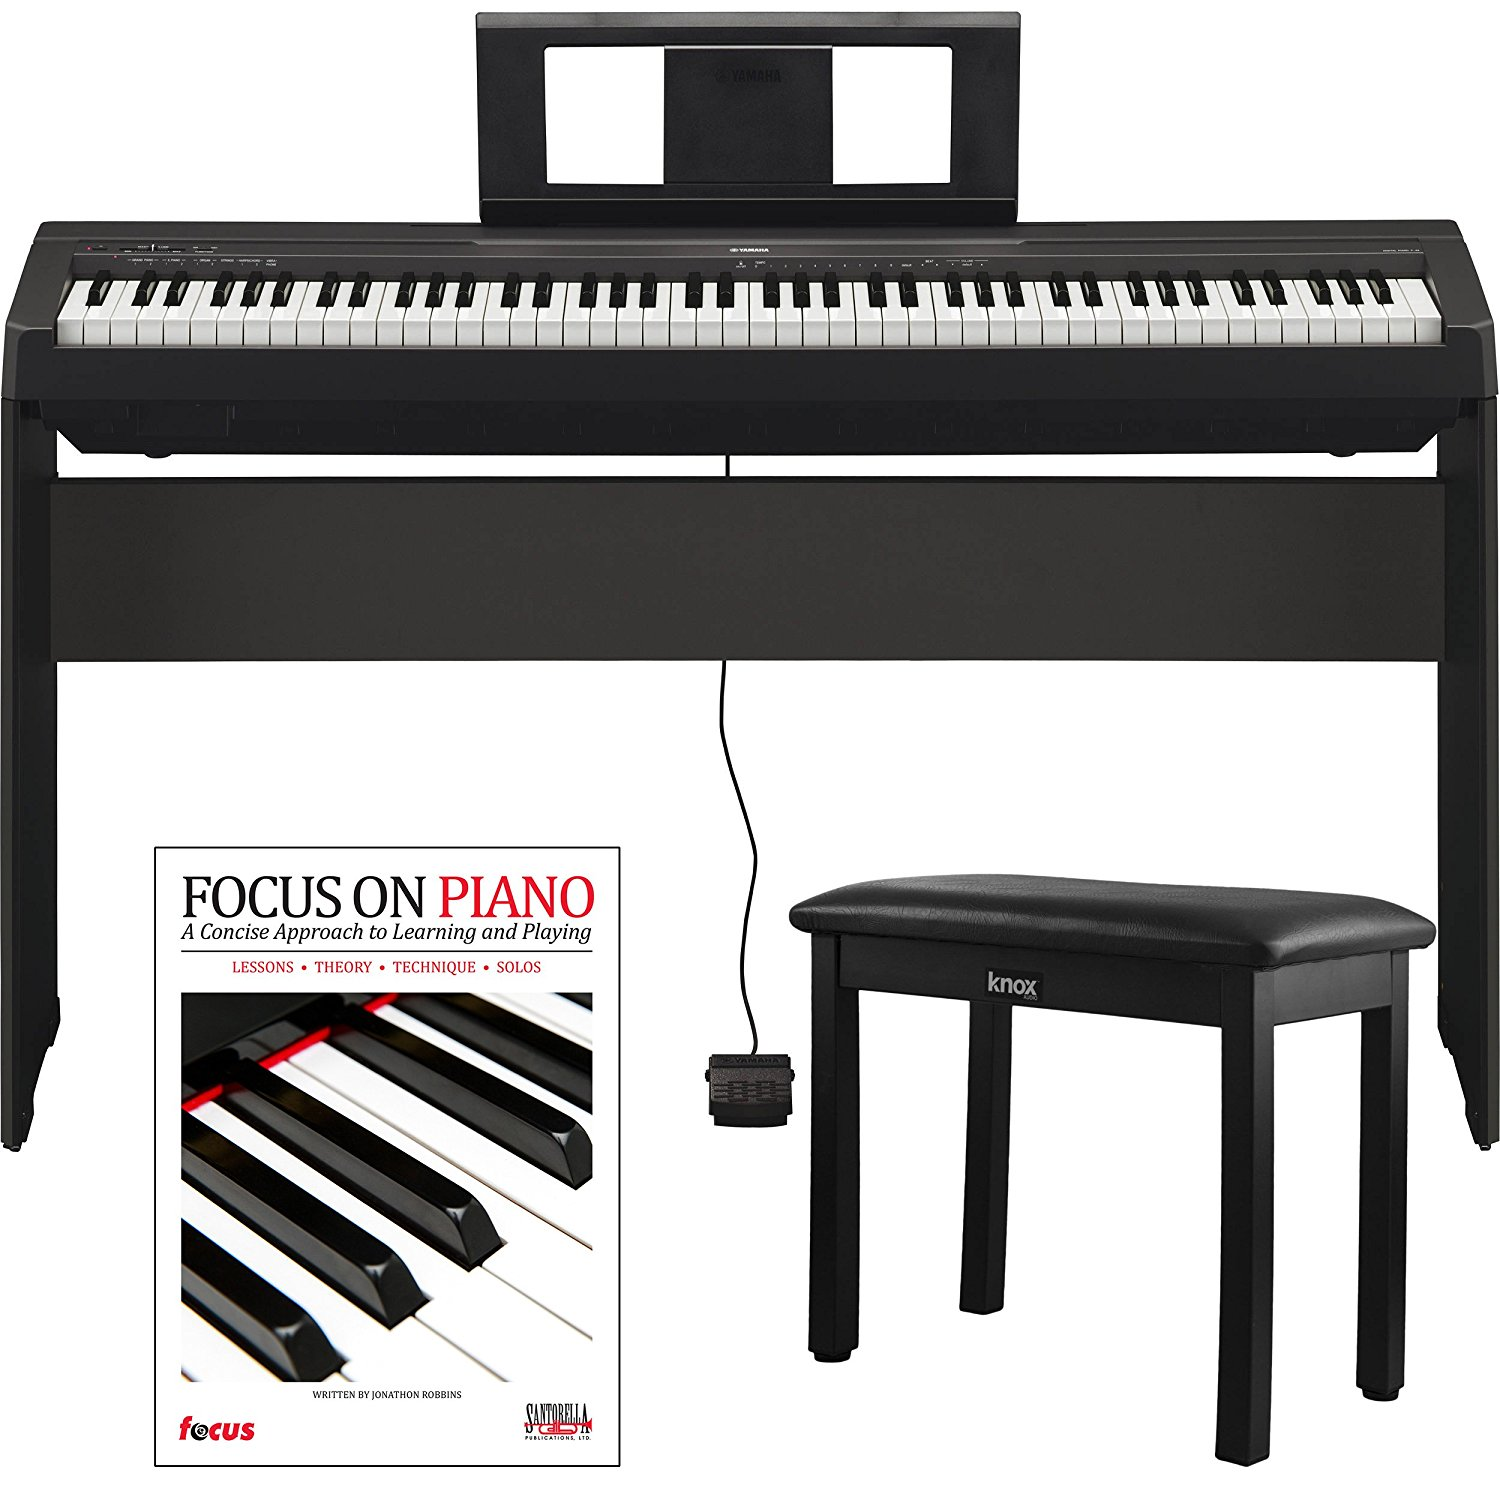 yamaha p45 88 weighted keys digital piano with yamaha l85 furniture stand knox bench and focus. Black Bedroom Furniture Sets. Home Design Ideas